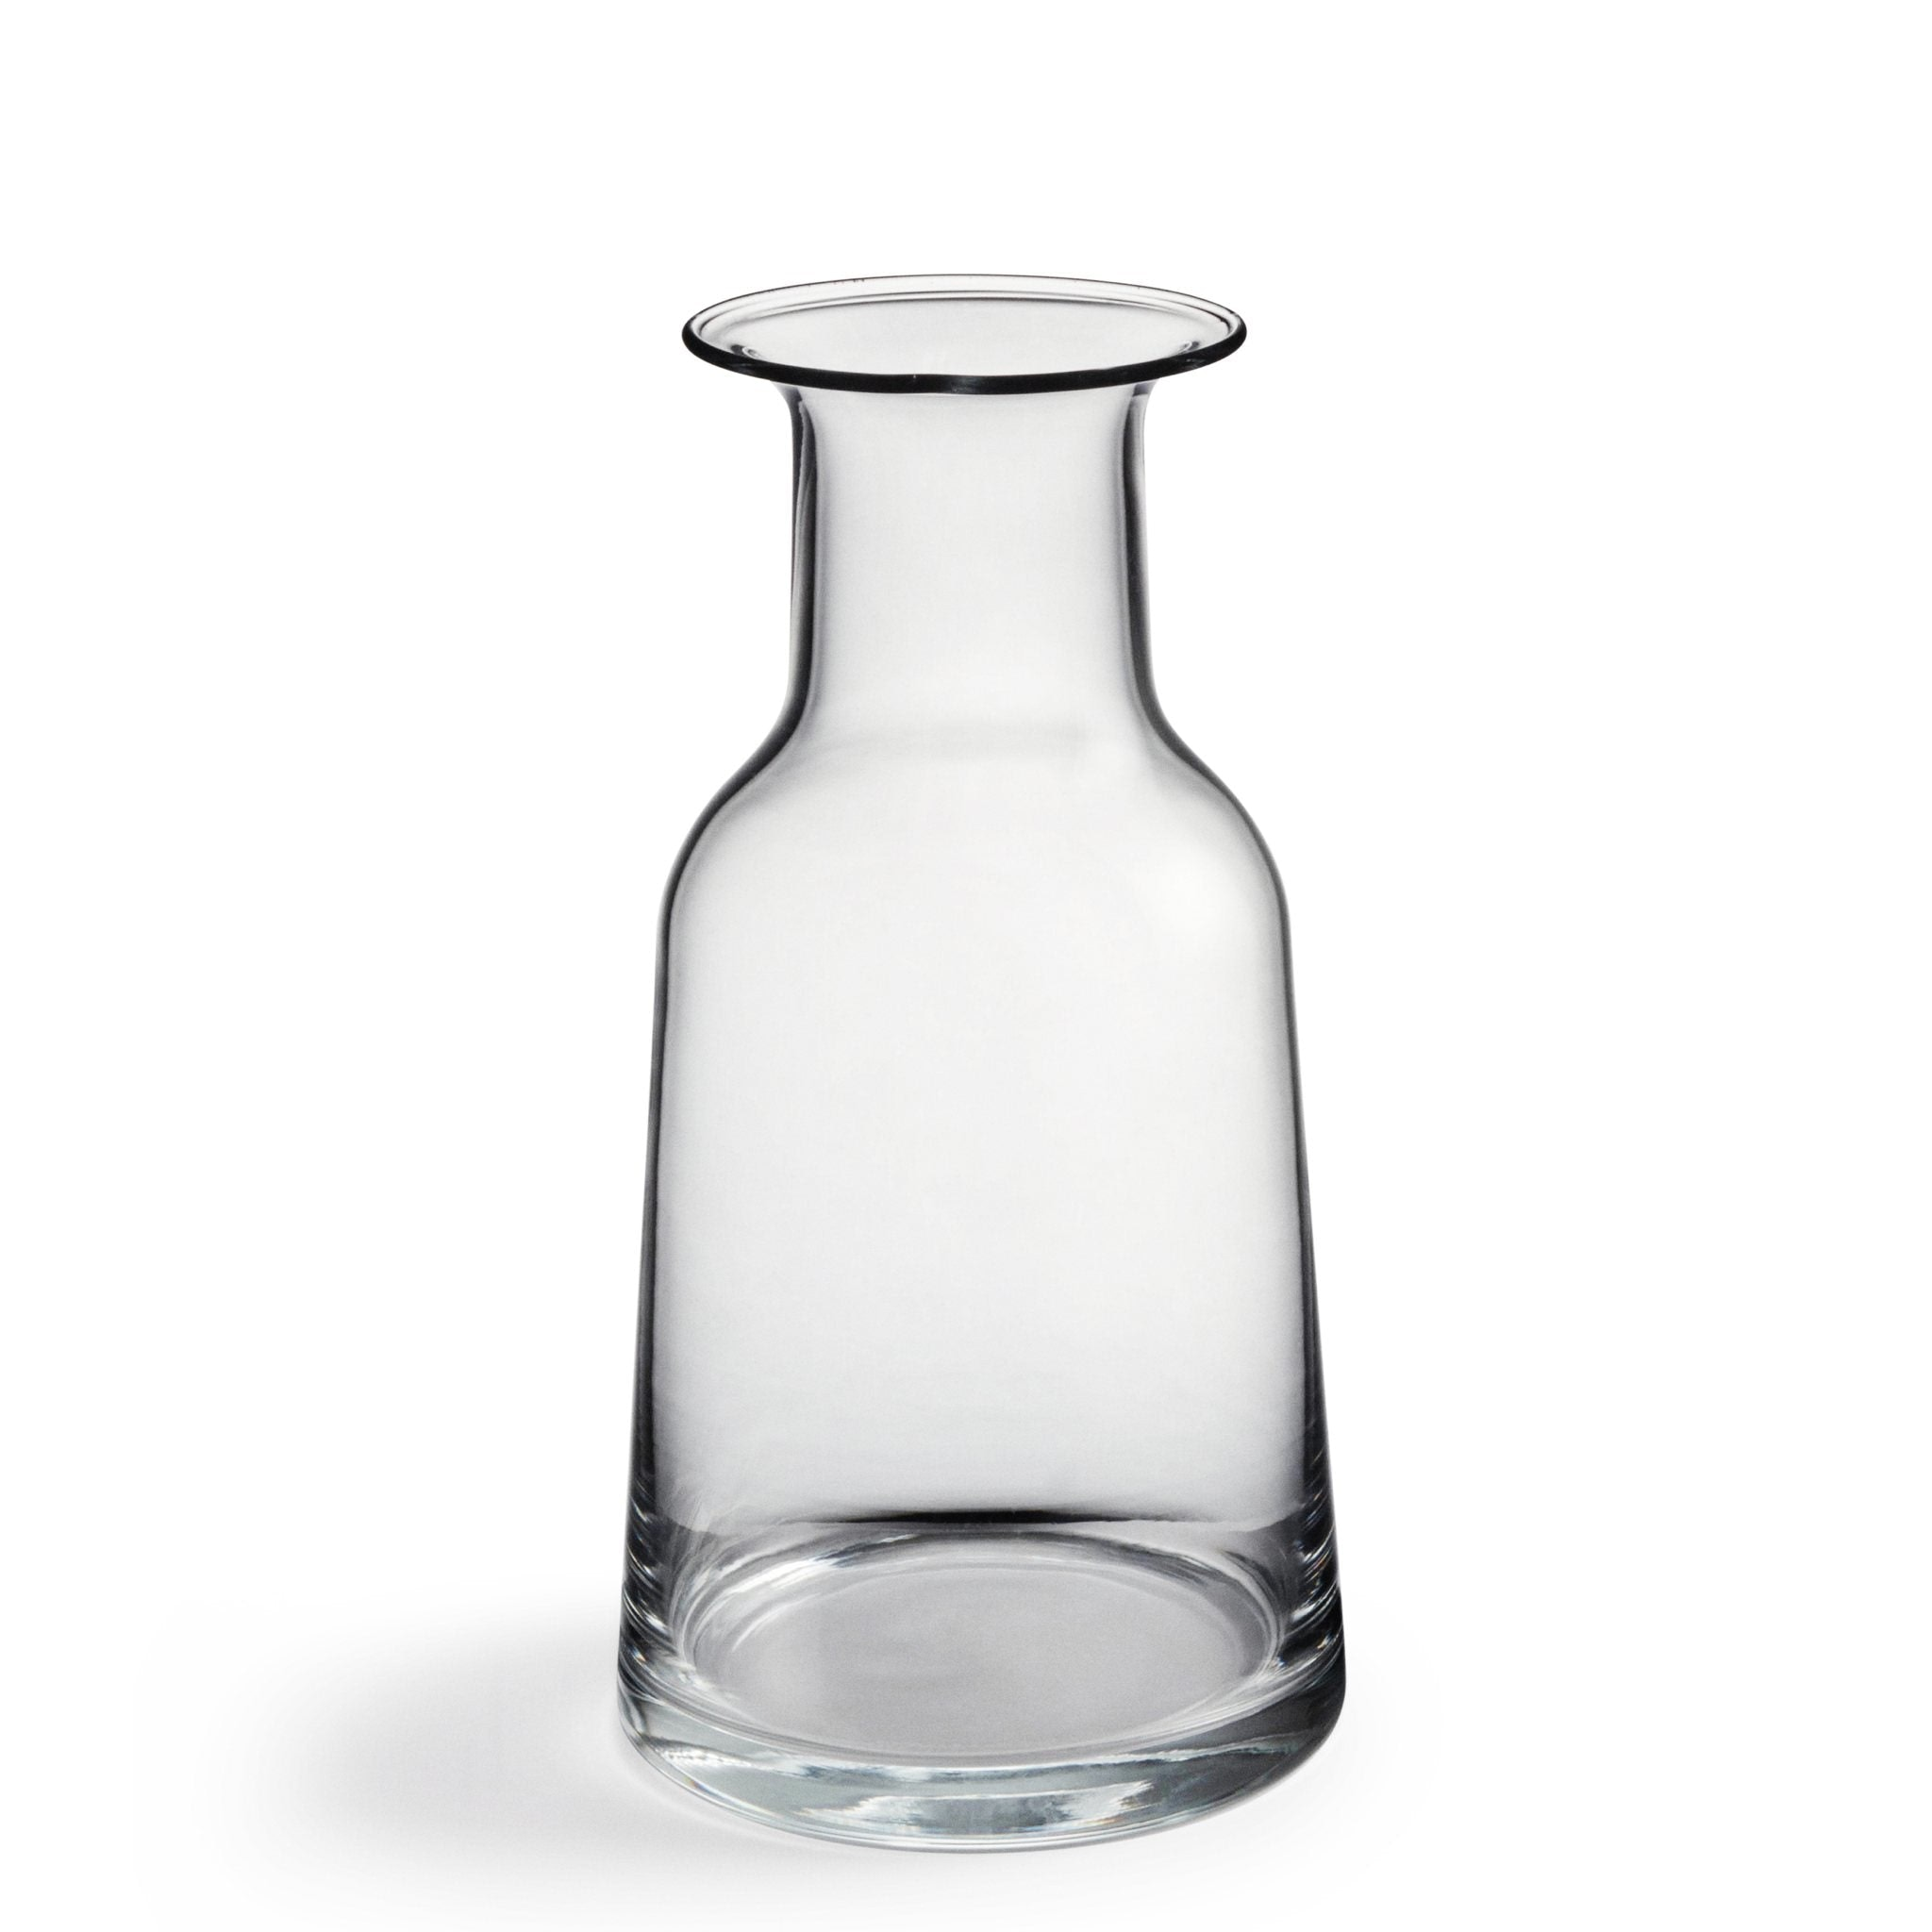 Hammer Decanter by Skagerak